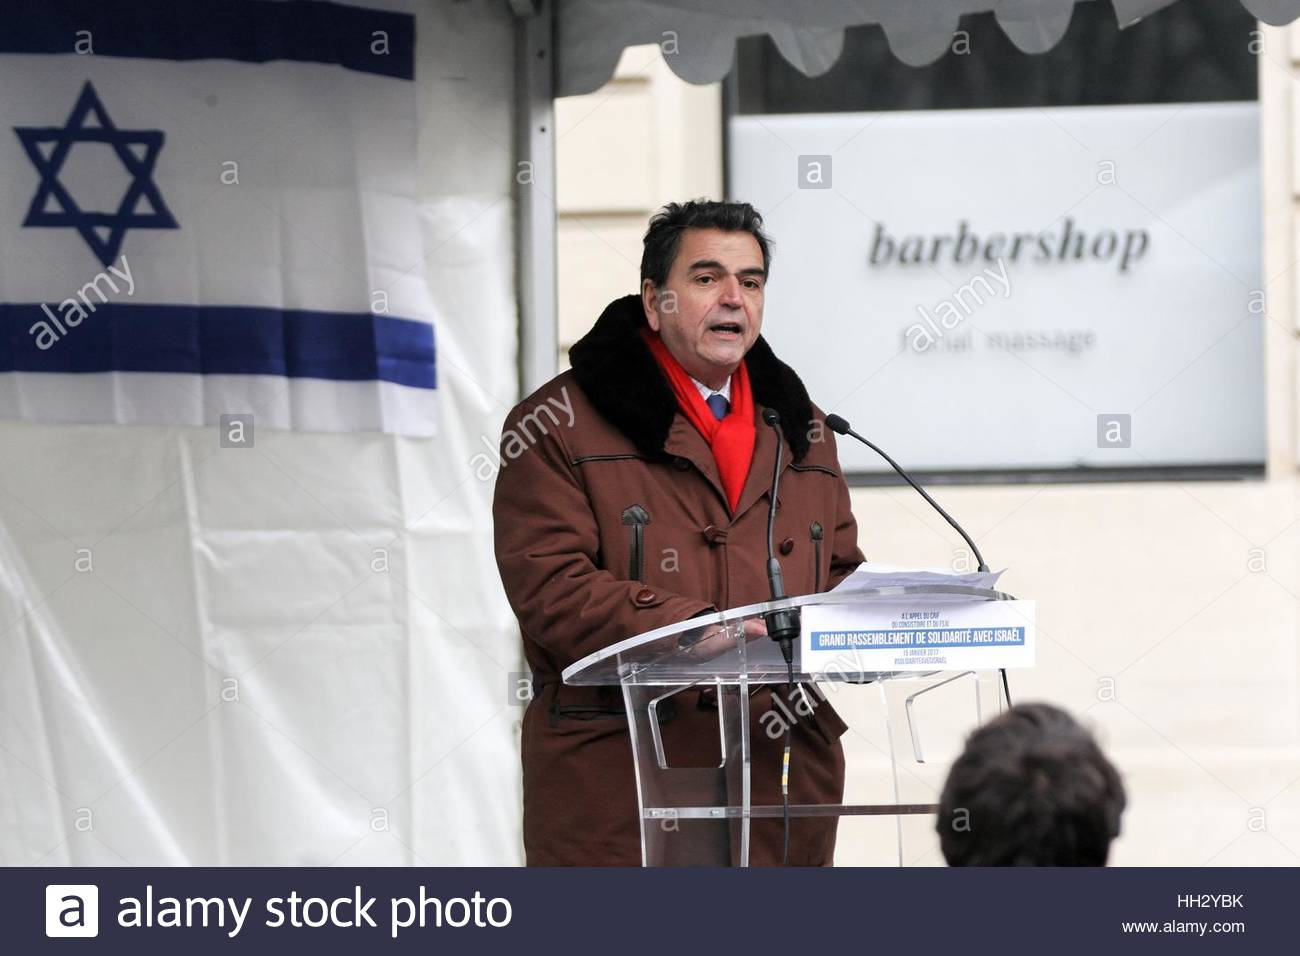 Paris, France. 15th Jan, 2017. French MP Pierre Lellouche speaks during a protest in Paris on January 15, 2017 as - Stock Image